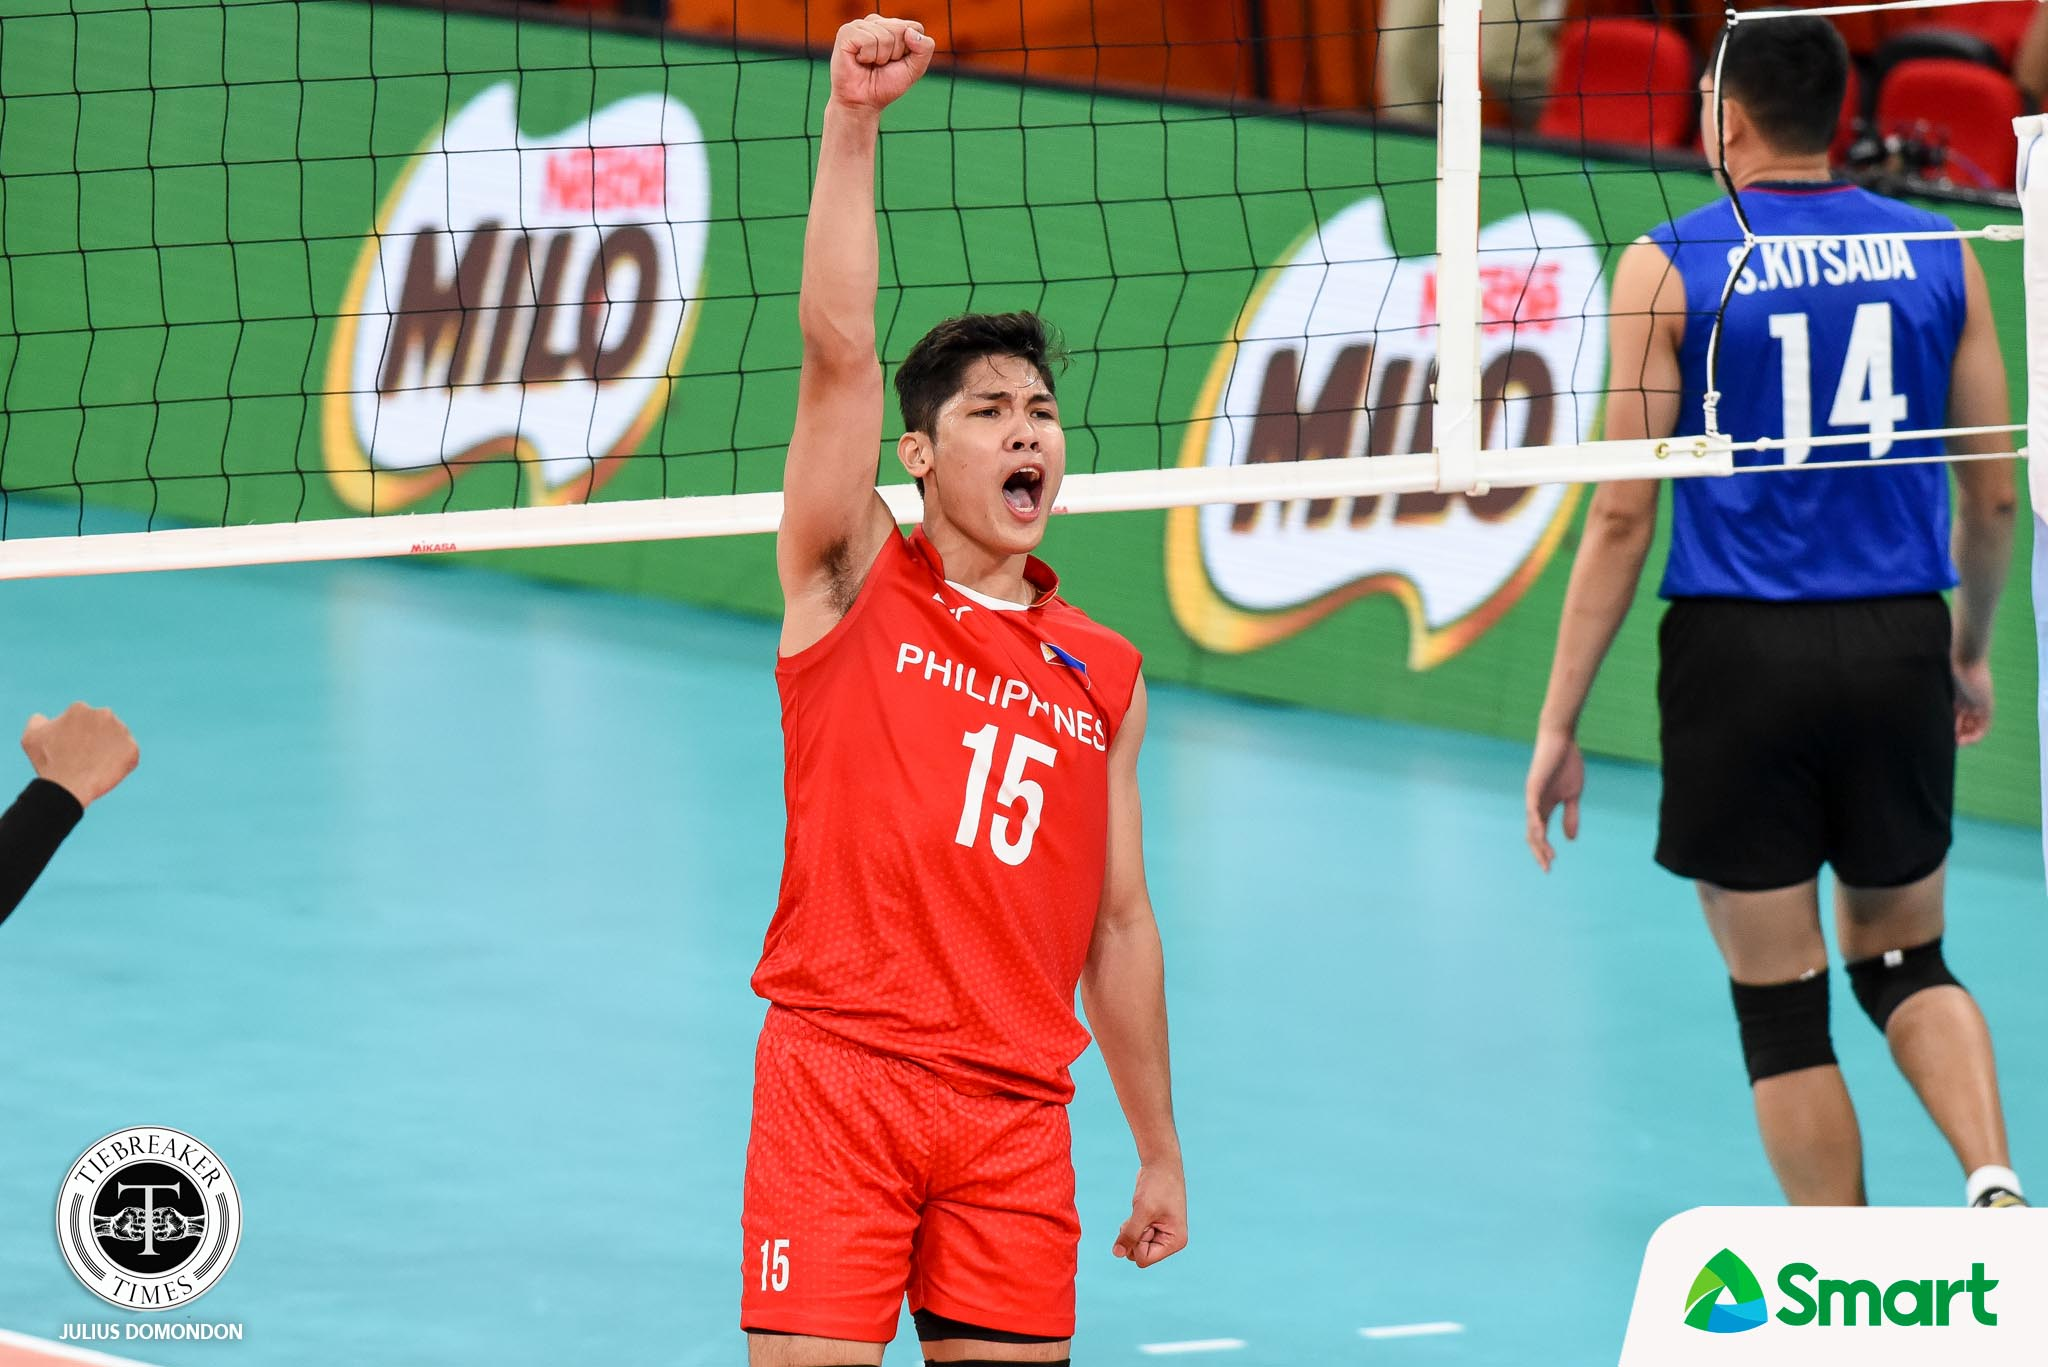 2019-sea-games-volleyball-philippines-def-thailand-espejo Historic SEAG silver vindicated Spikers' Turf, says Mozzy Ravena News Spikers' Turf Volleyball  - philippine sports news